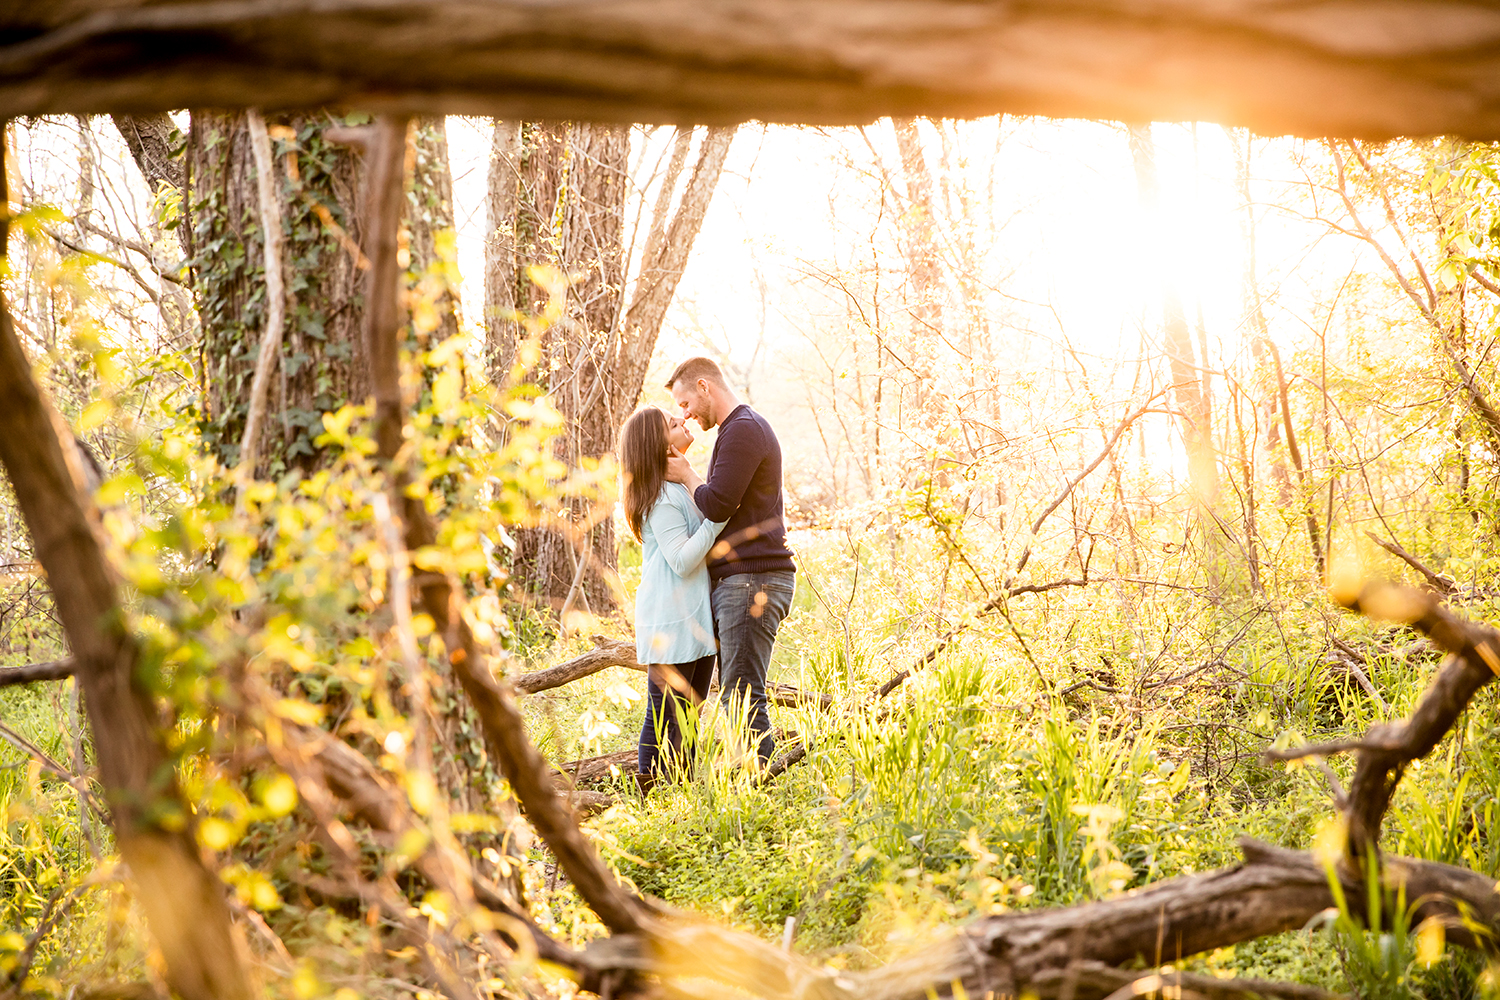 The Best Places in Richmond to Propose and Pop the Question - Image Property of www.j-dphoto.com